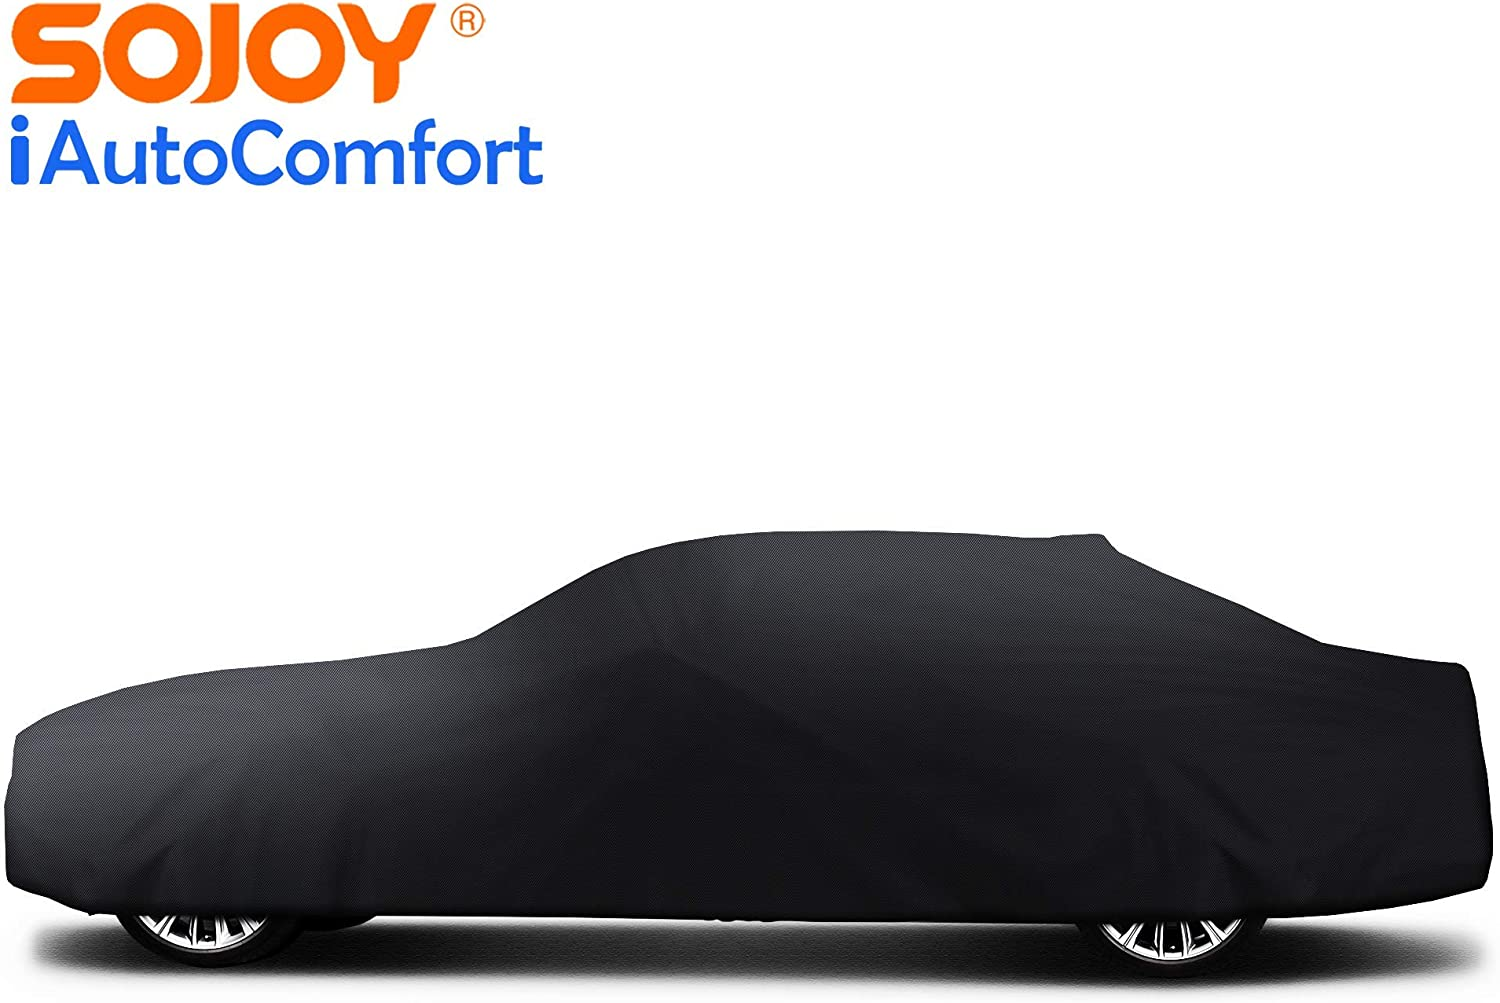 Sojoy Universal Indoor Car Cover Soft Elastic Breathable Fabric Stretch Dust-Proof Protection Full Car Cover for Underground Garage Automobile Expo Car Show Black 171-215